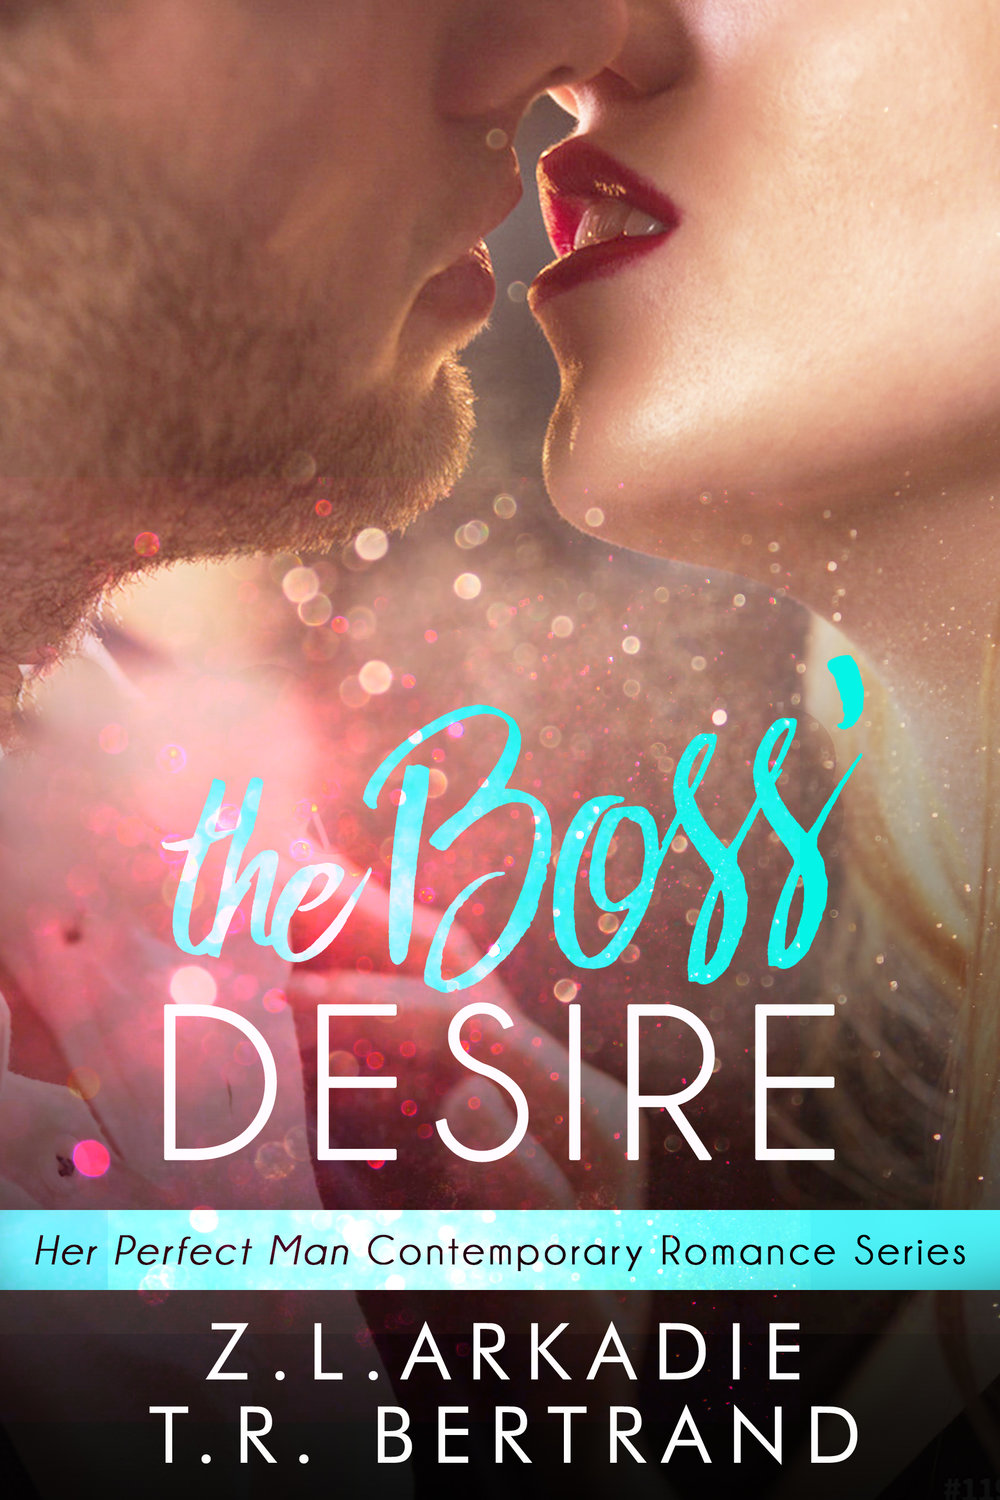 The Boss' Desire - Zuleika Arkadie.jpg